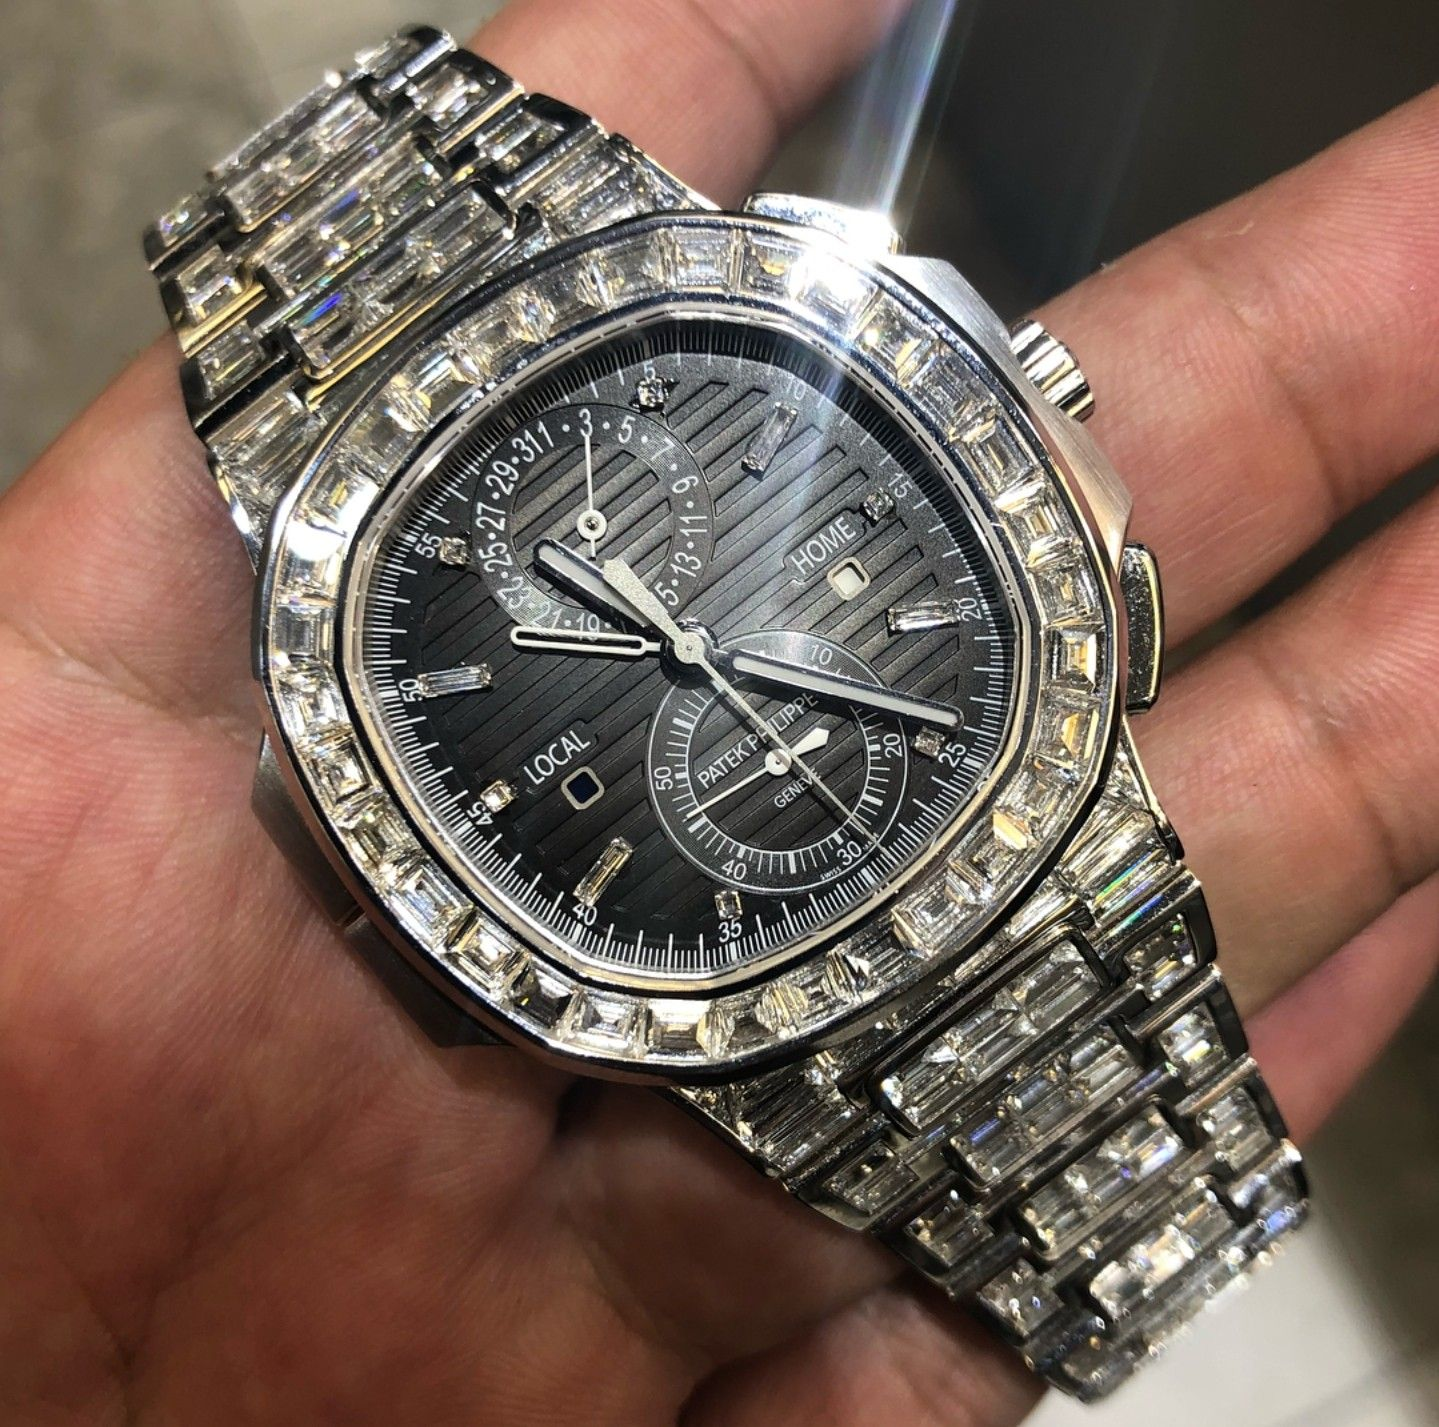 Pin By Duke Leroy On Ice In 2019 Luxury Watches Luxury Watches